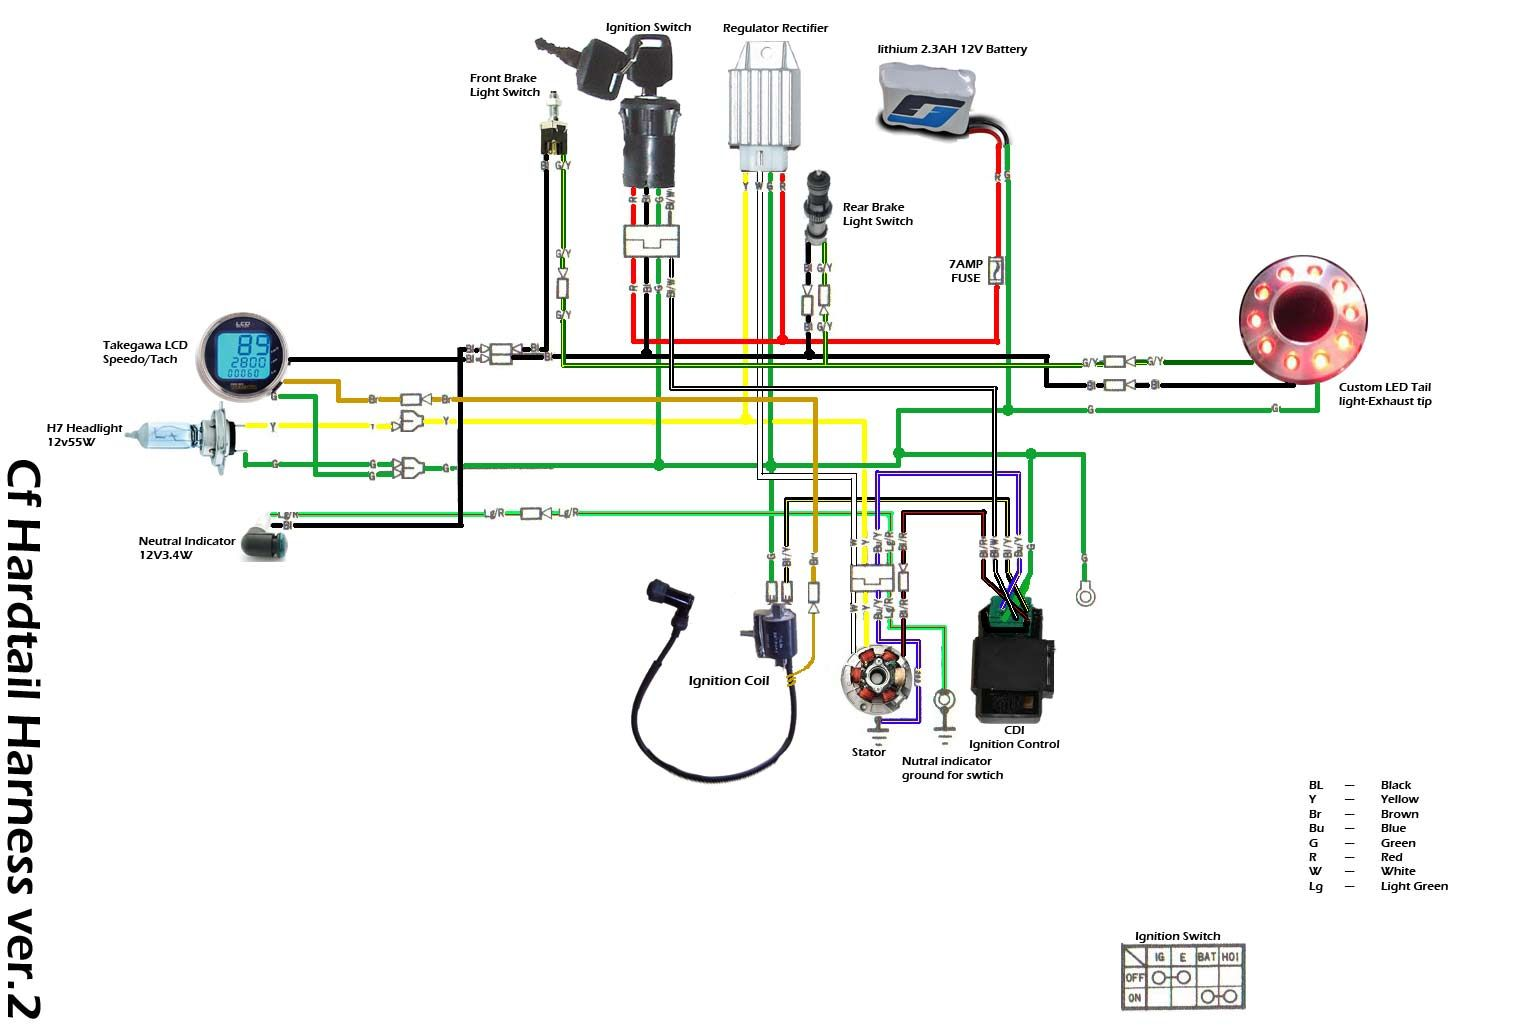 wrg 2891 110 wiring diagrambuggy wiring schematic as well as vdo diesel tachometer wiring diagram [ 1516 x 1025 Pixel ]